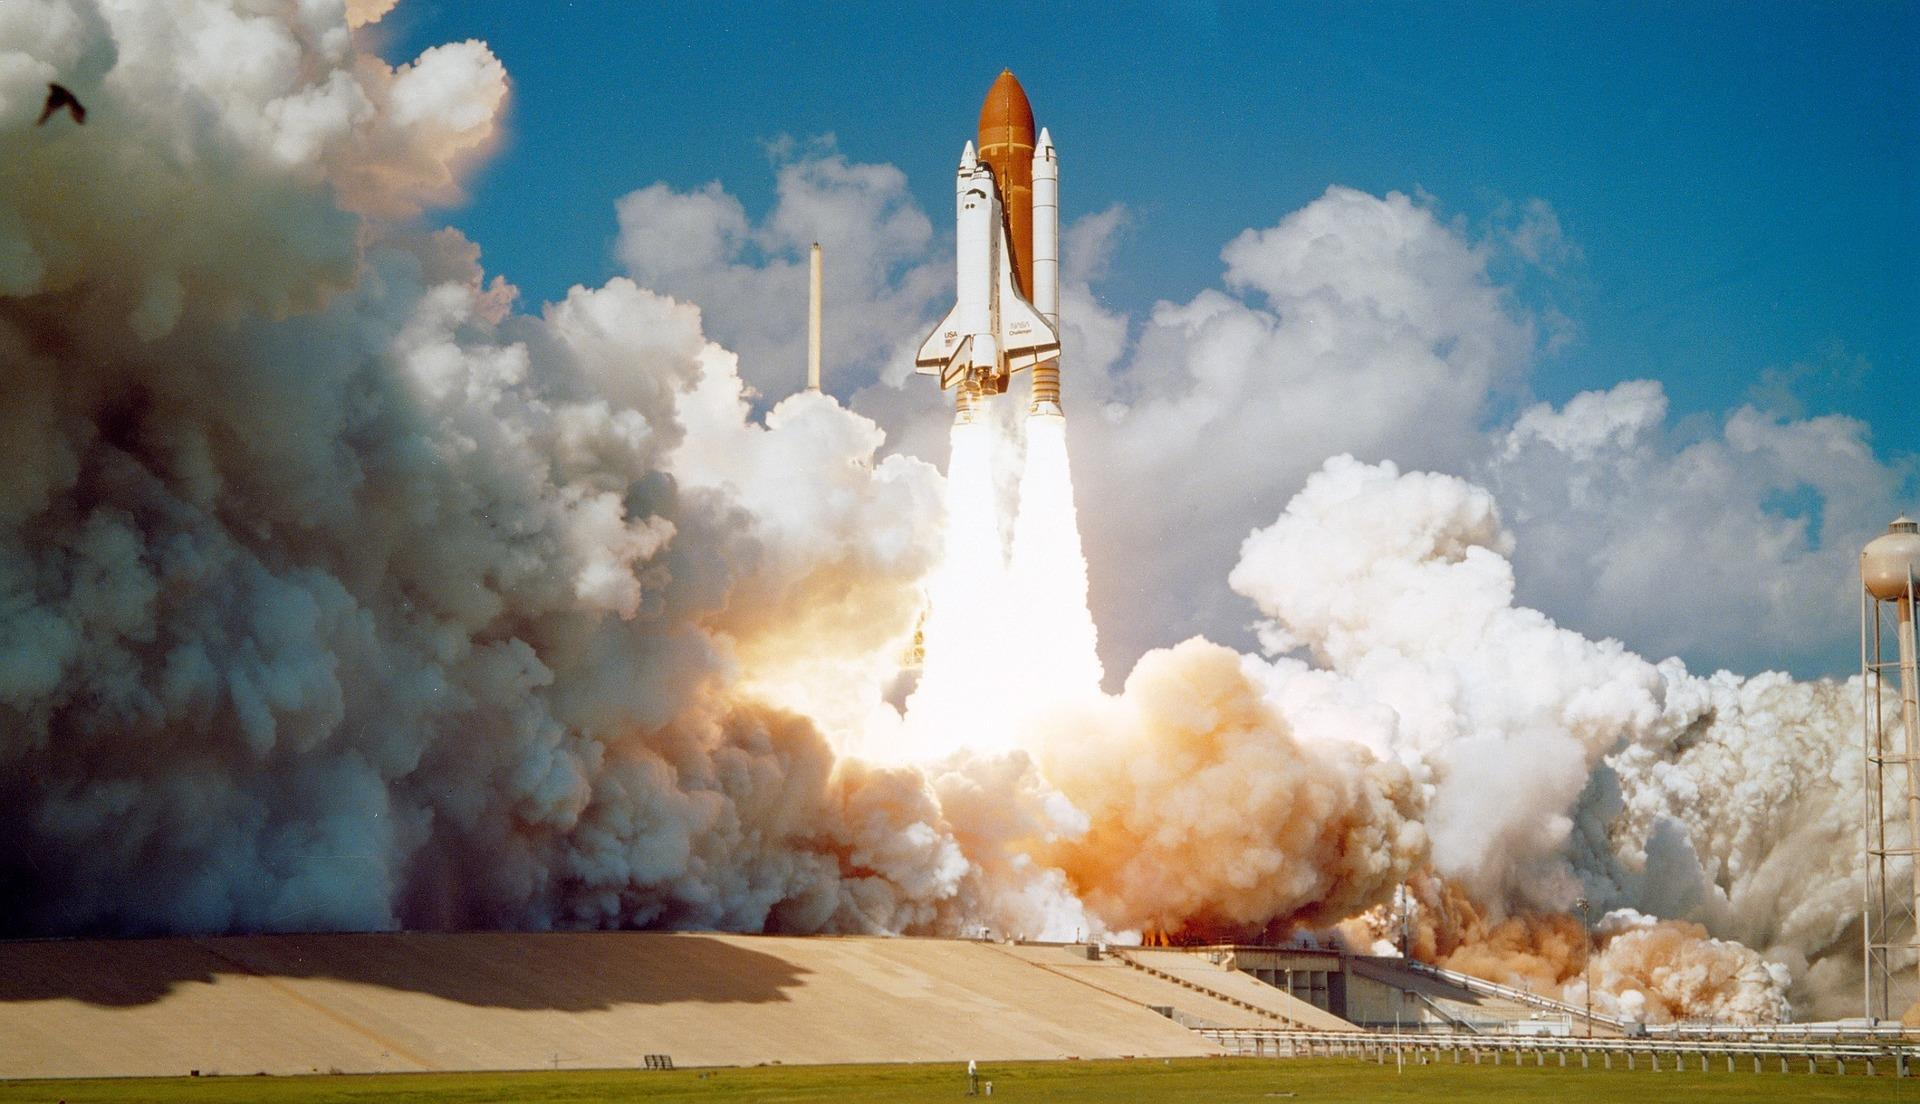 space shuttle challenger impact on america - photo #36